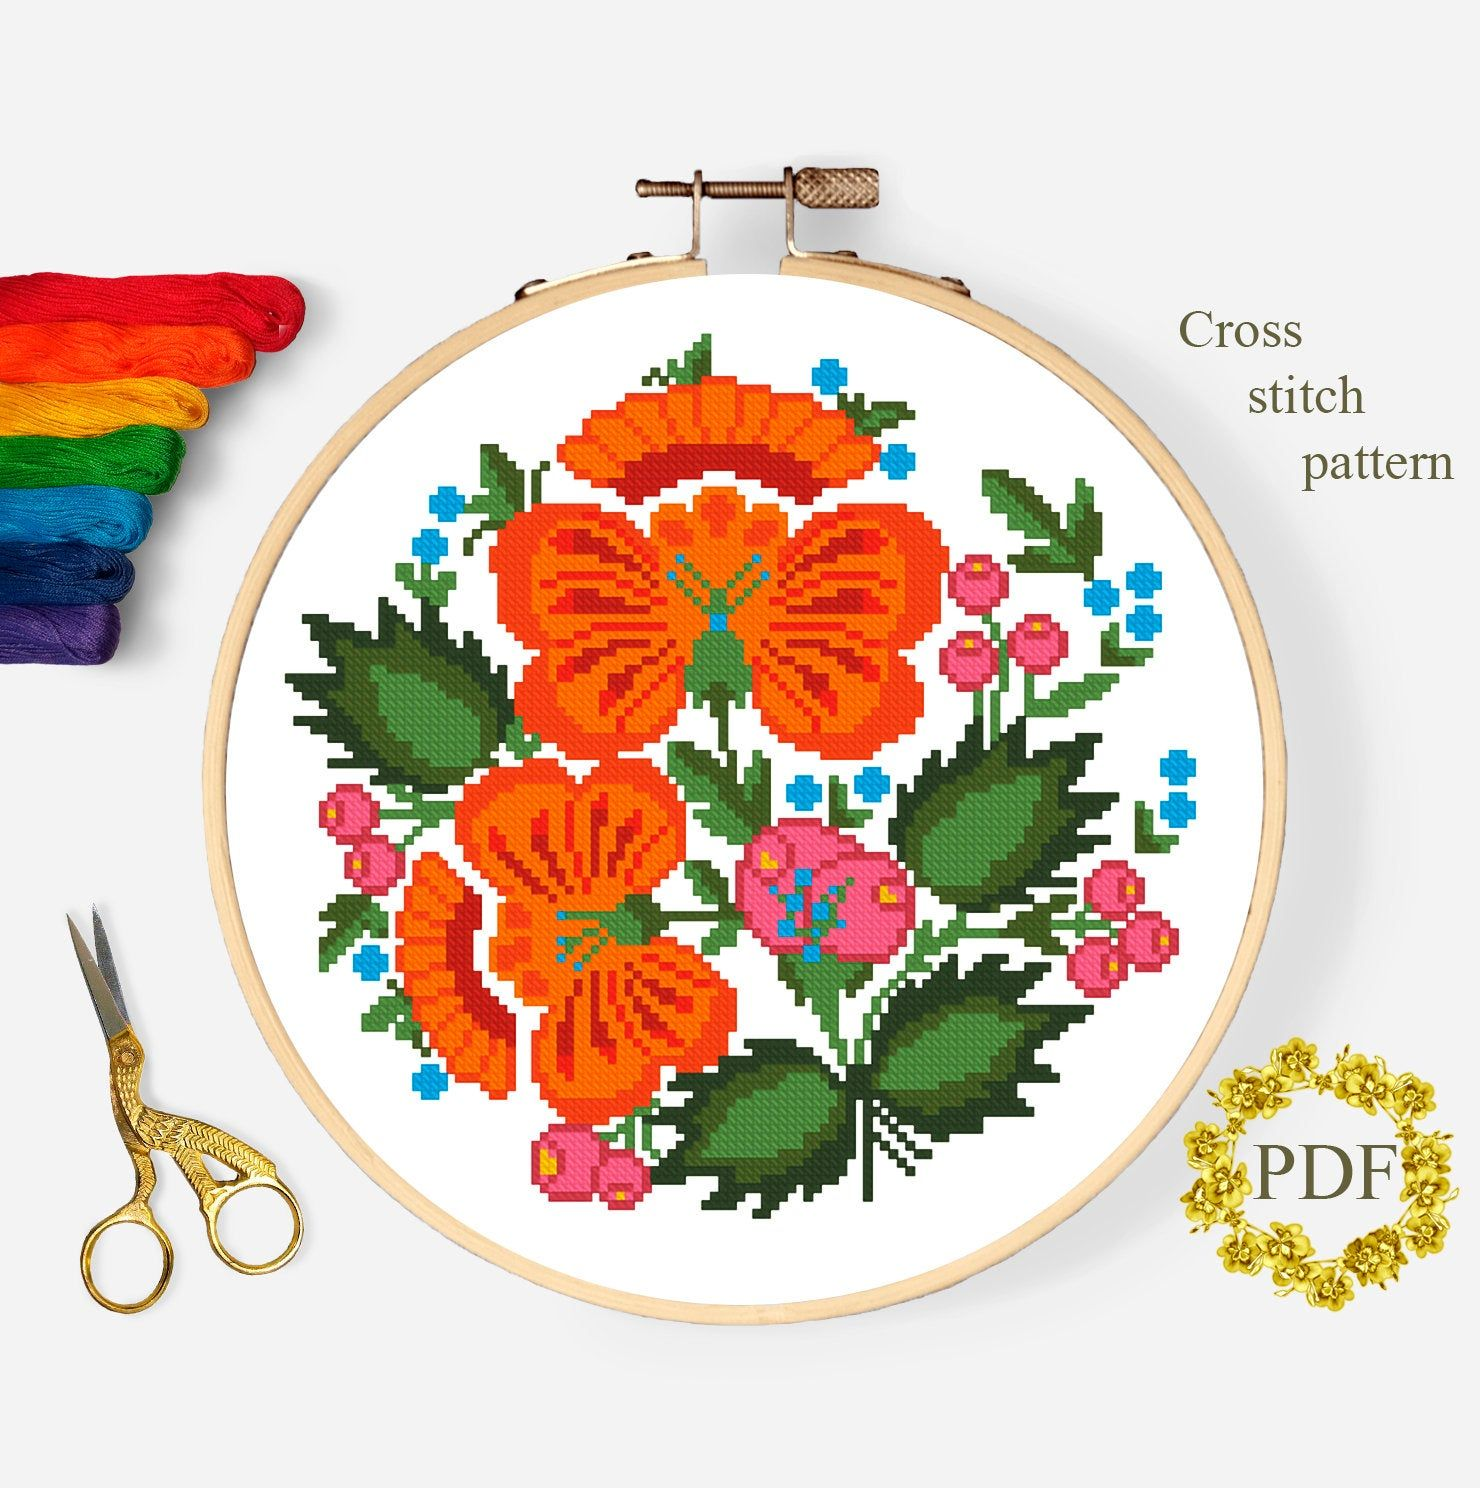 Nature Birds Embroidery Hoop Instant Download Flowers Counted Cross Stitch Chart Floral Folk Art Cross Stitch Pattern Modern PDF